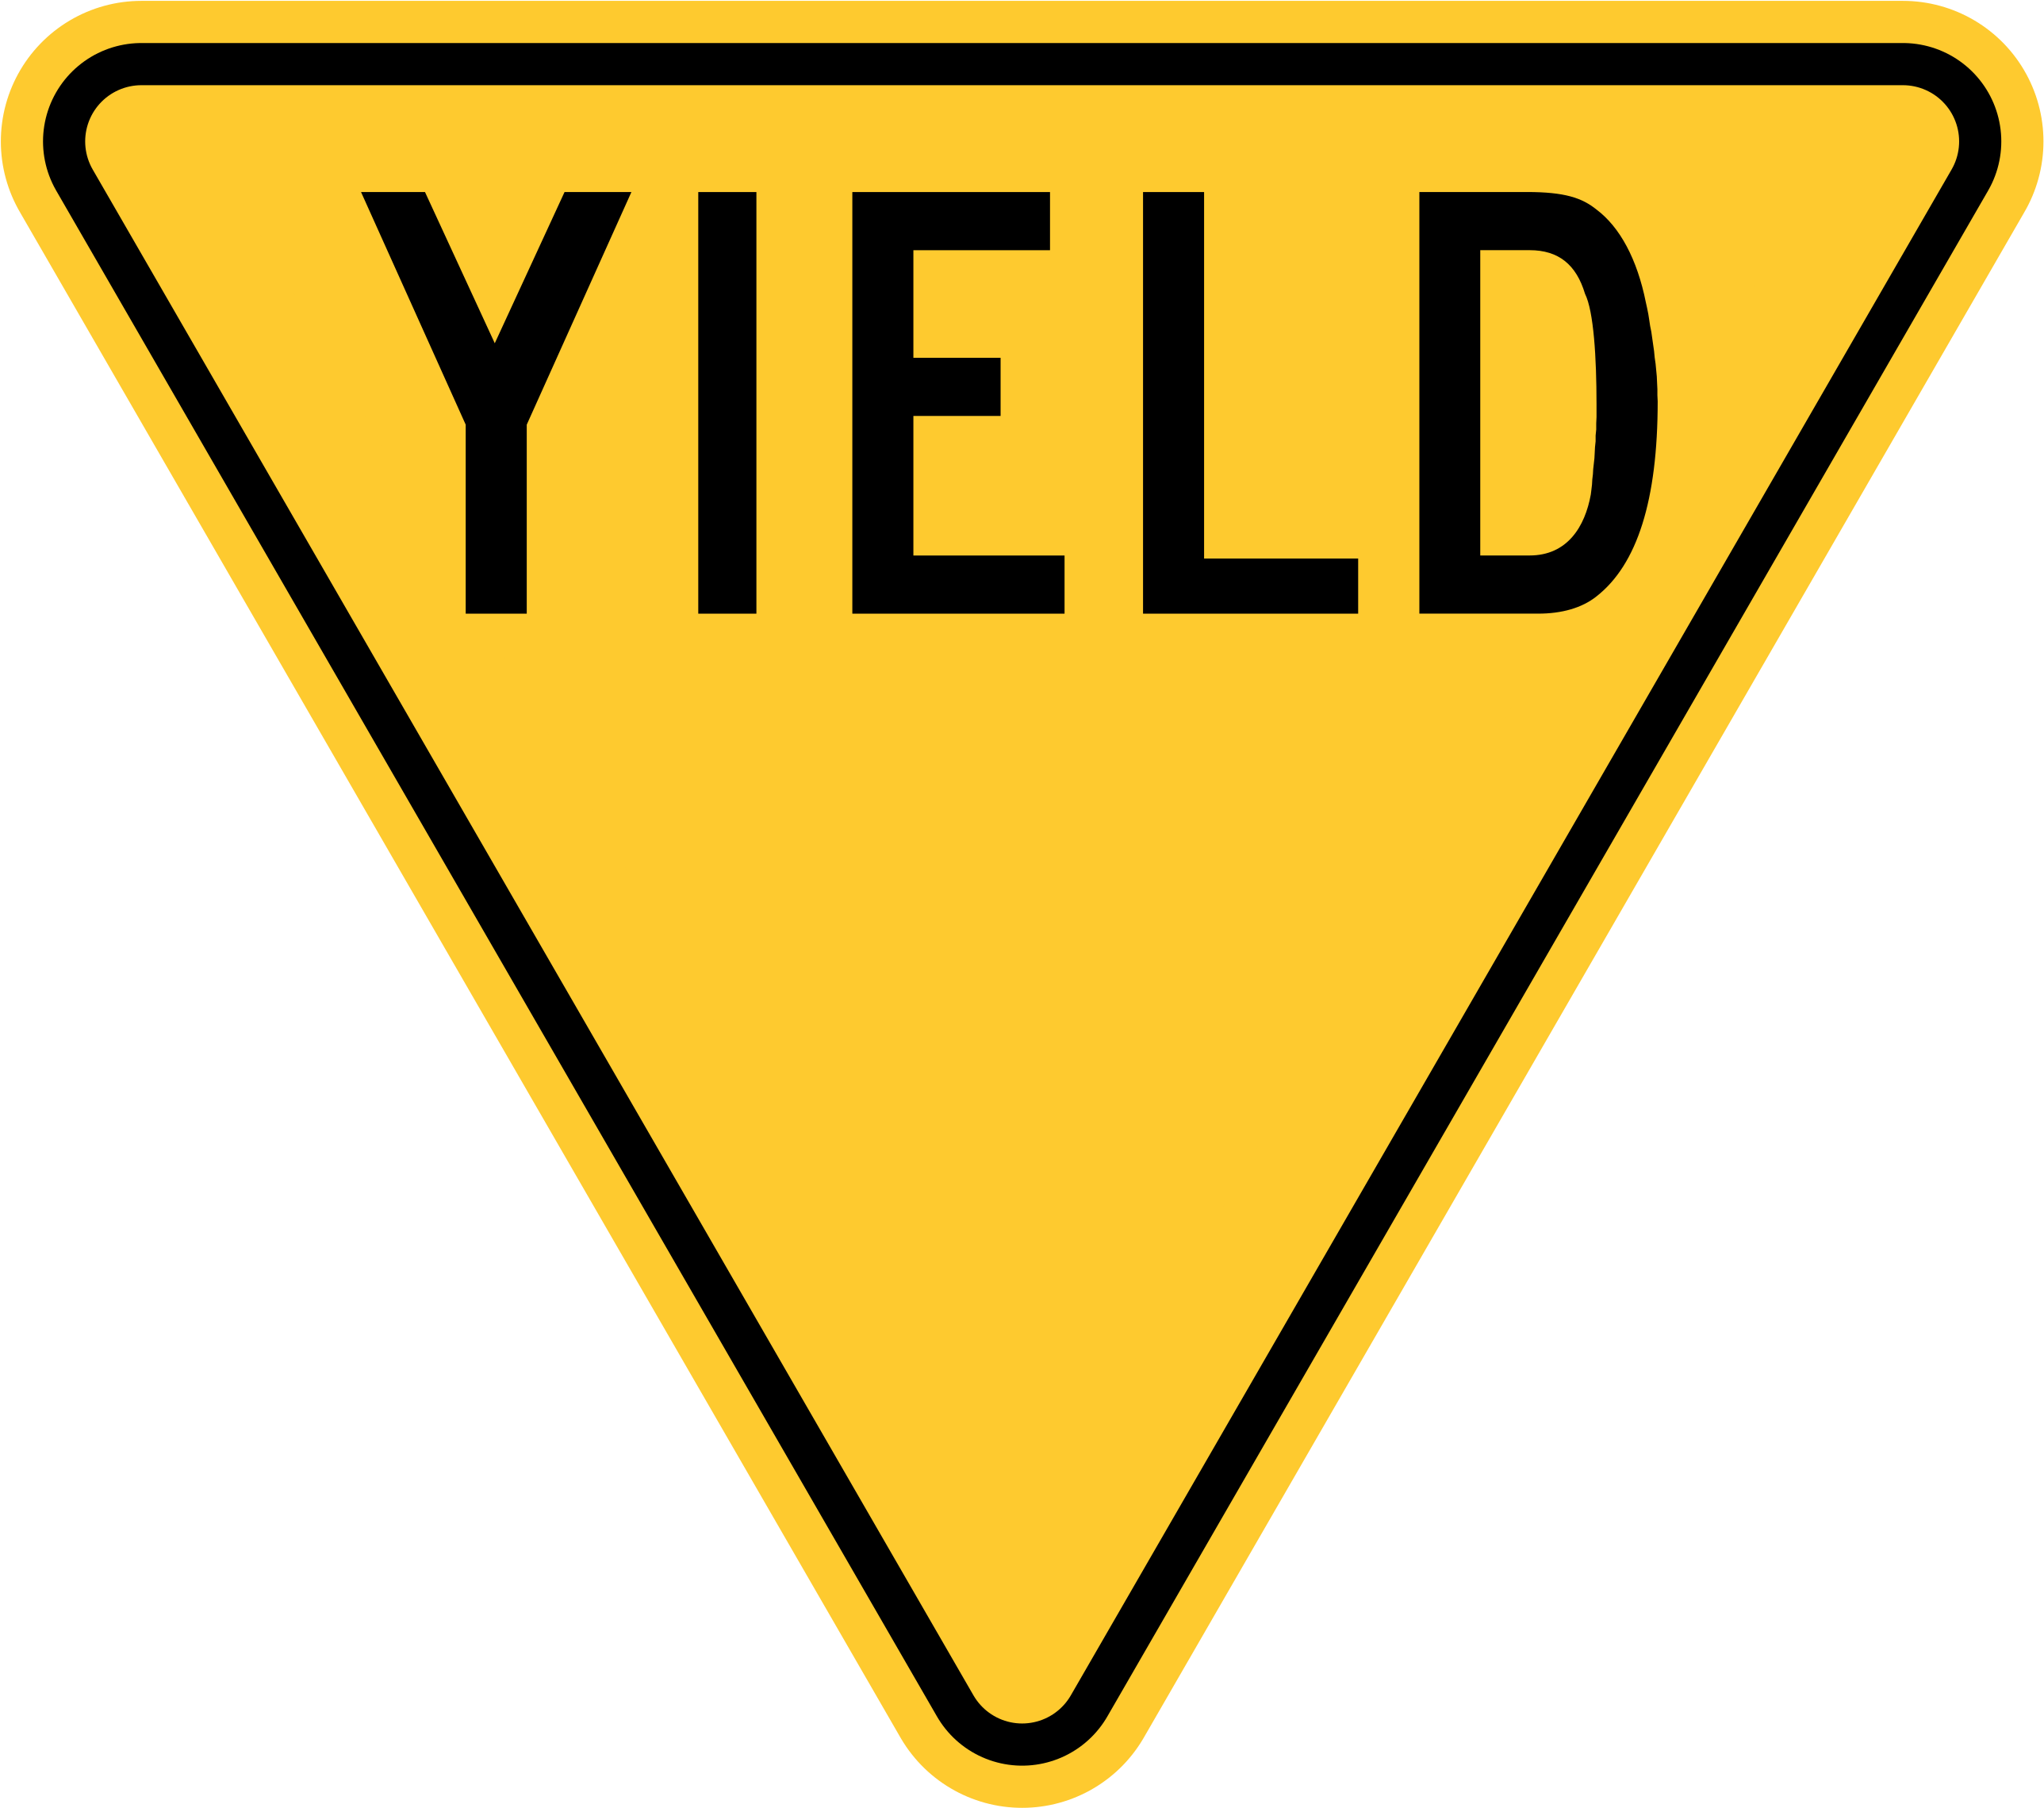 Yeild clipart clipart transparent download United States Sign - Yield Sign With No Background Clipart ... clipart transparent download